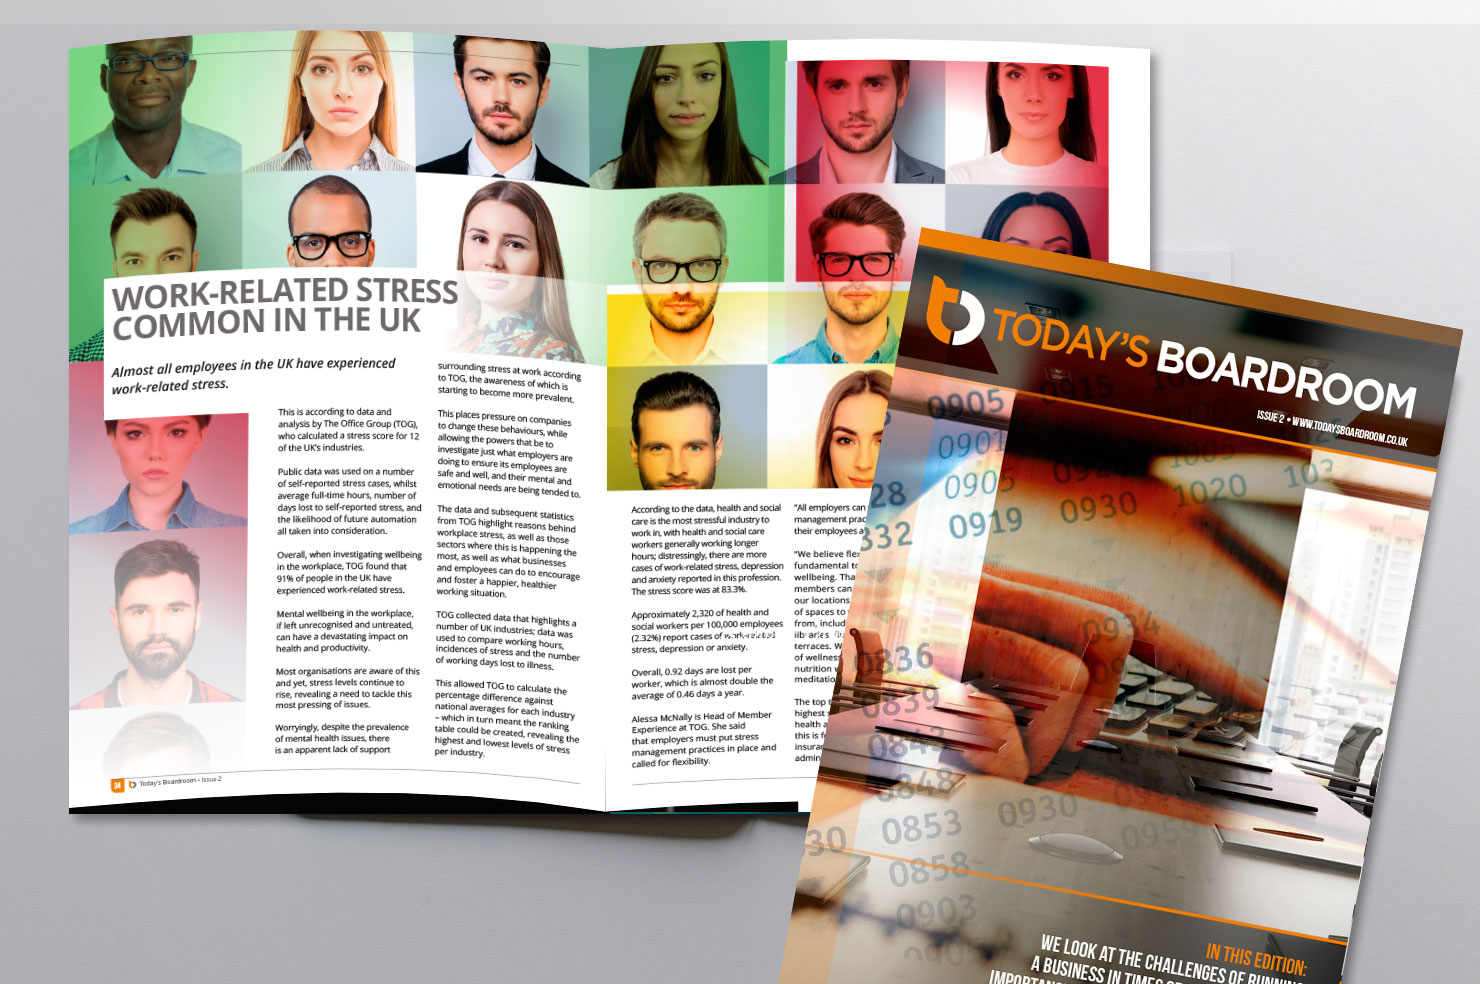 Today's Boardroom magazine issue 2